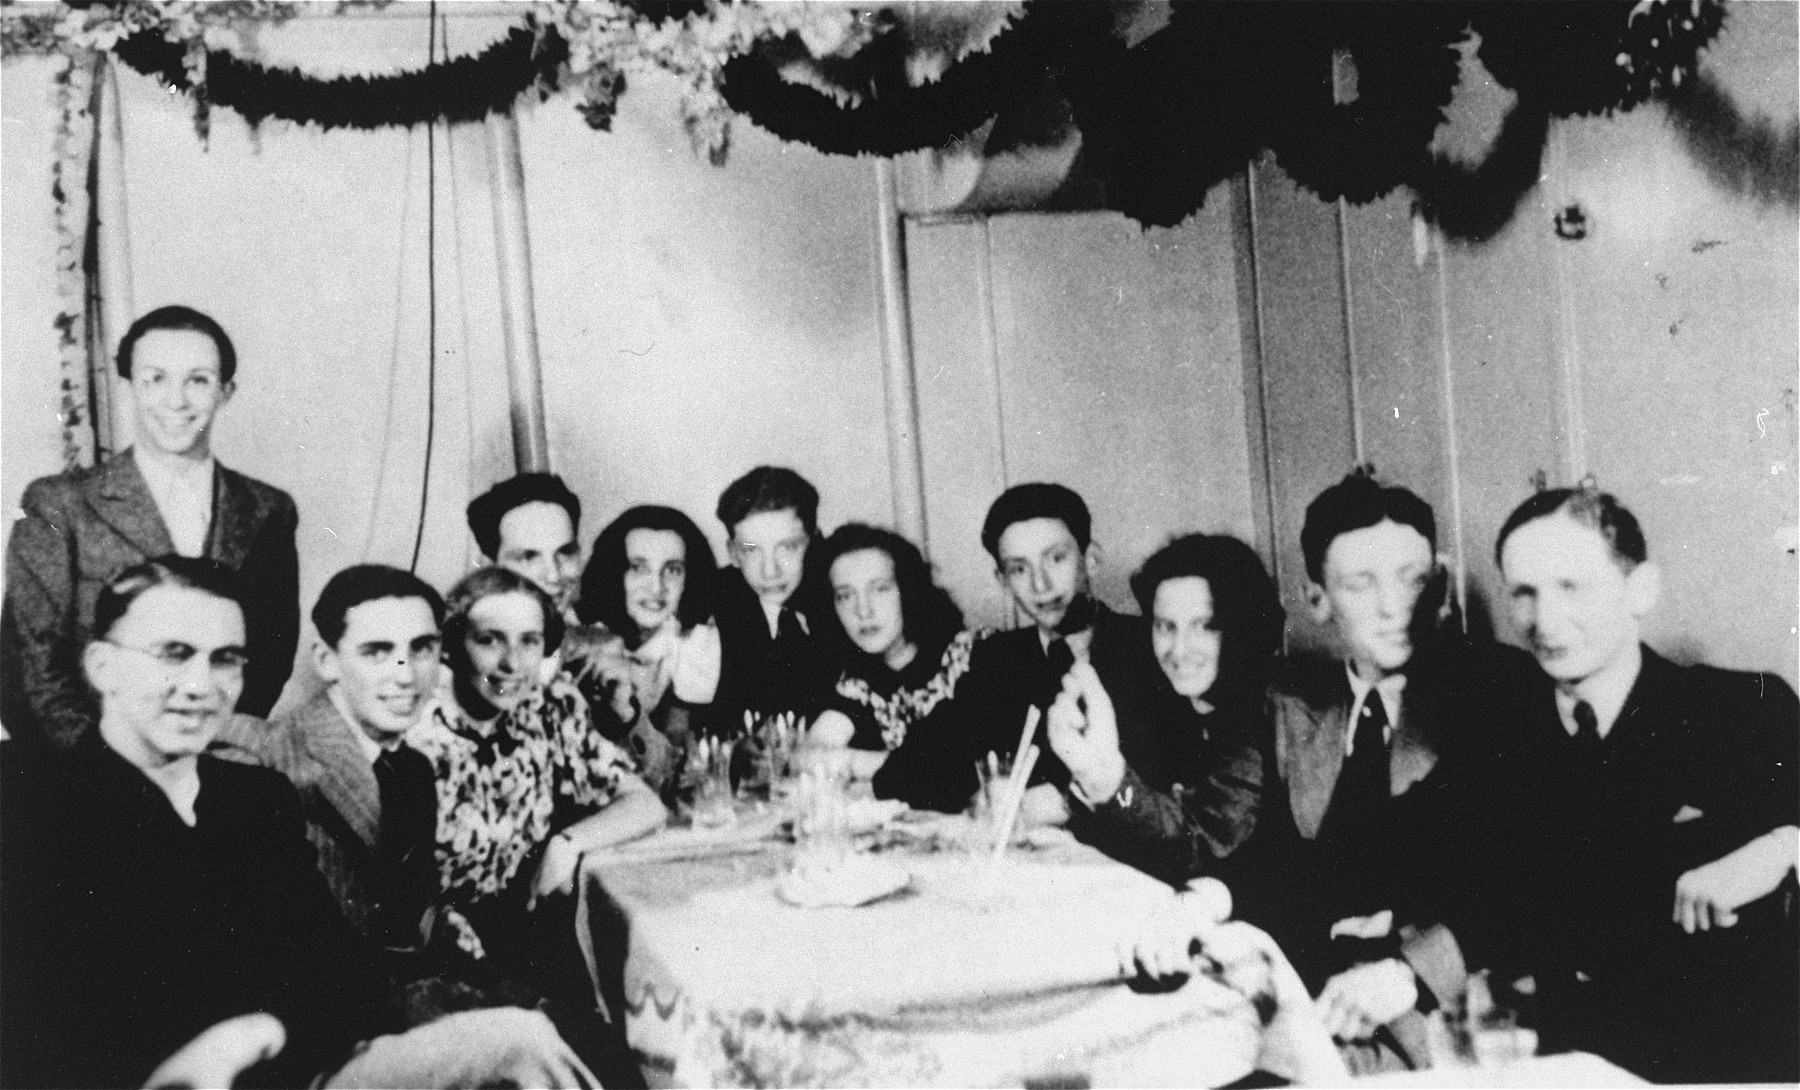 Teenagers at a party on the MS St. Louis.    Seated left to right are Ernst Weil, Jacques Ring, Fritz Buff, Sonja Knepel and Erich Spitz.